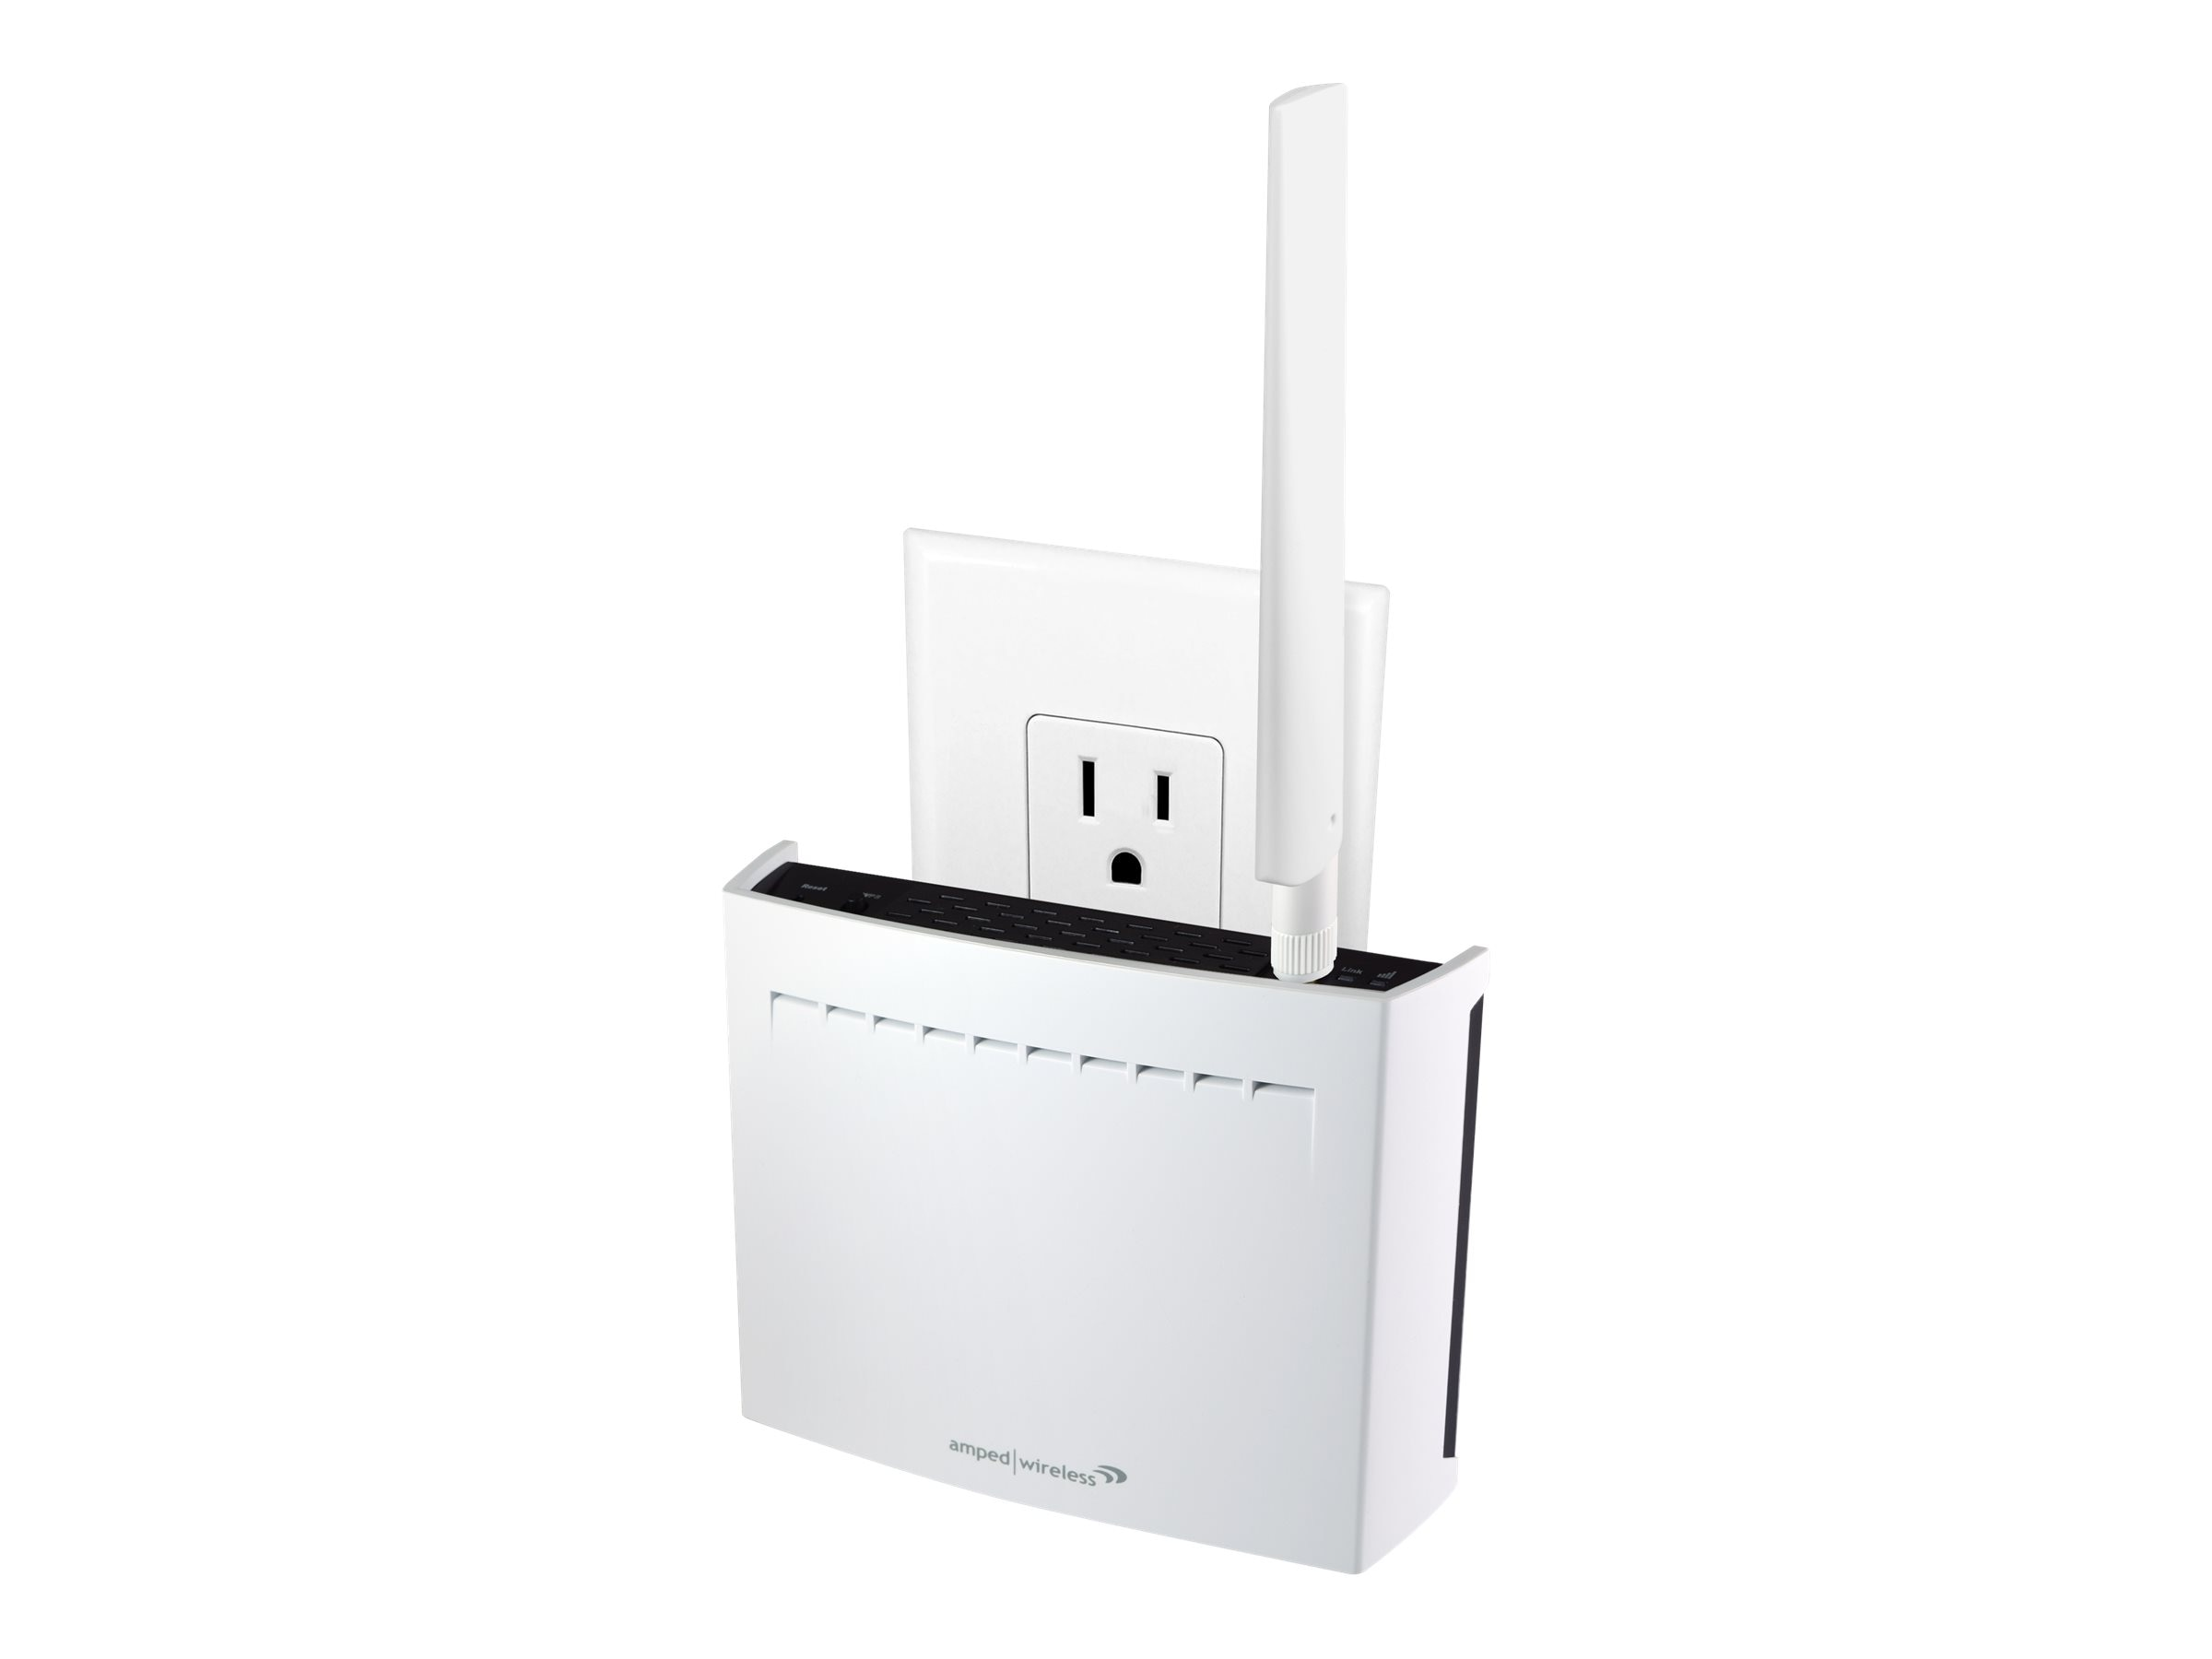 Amped Wireless High Power PlugIn AC Long Range Extender 802.11 AC1750 1 LAN Port, REC33A, 18791234, Network Repeaters